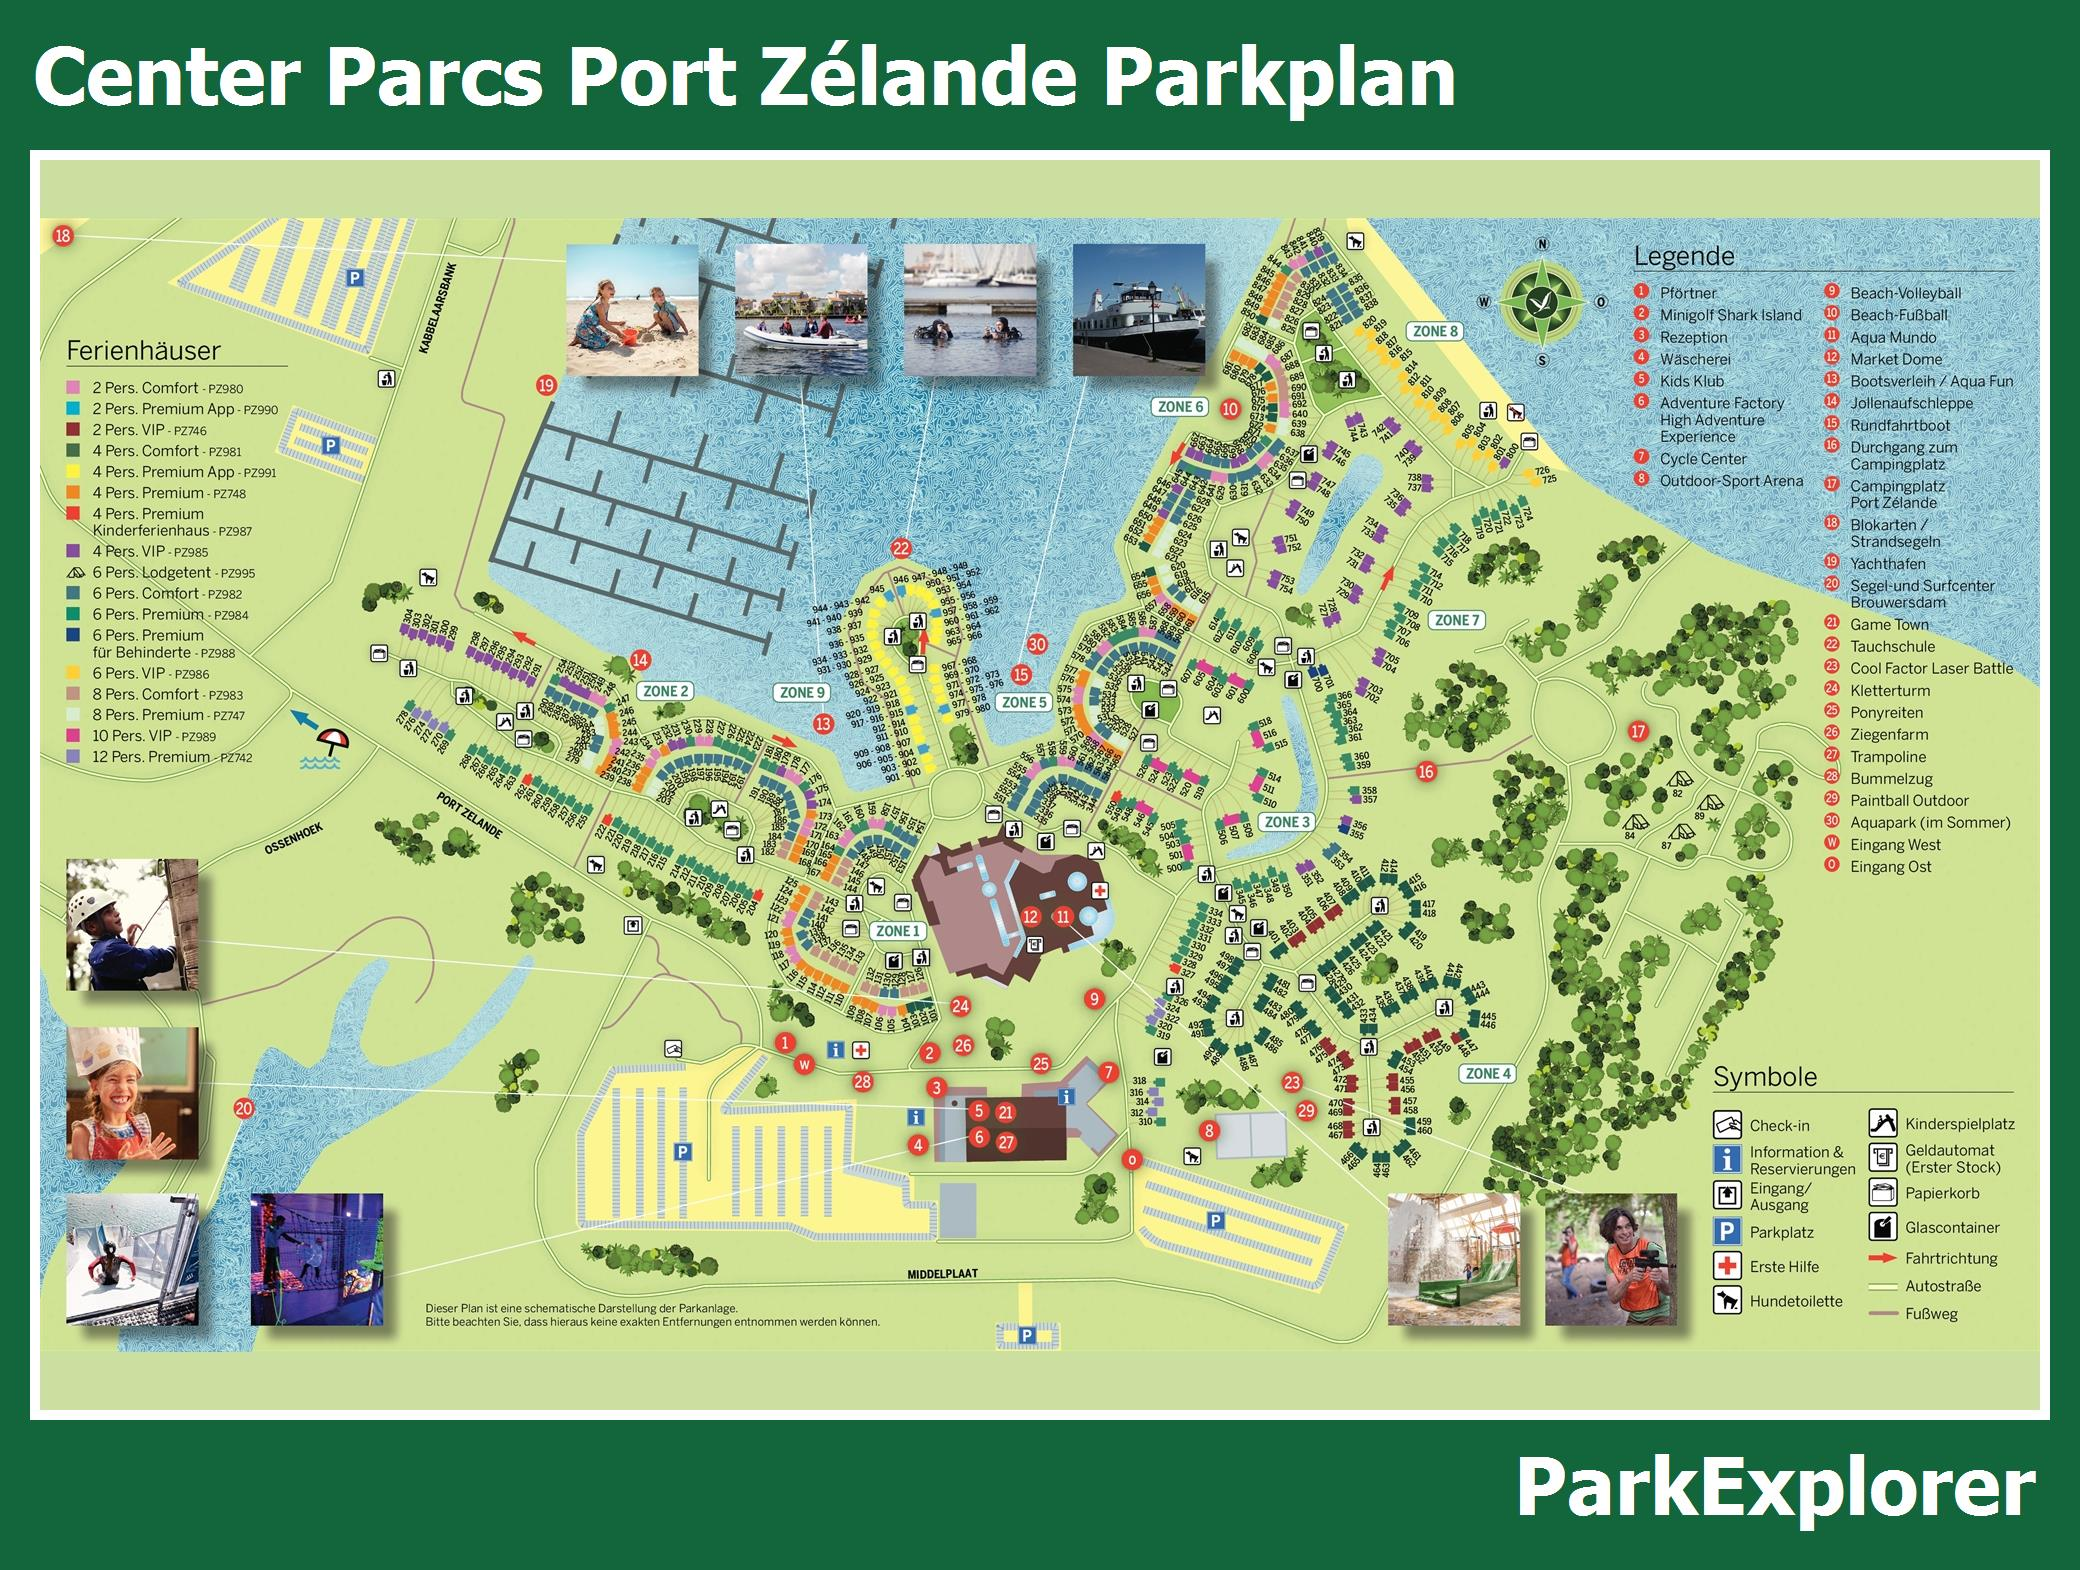 Plan von Center Parcs Port Zélande